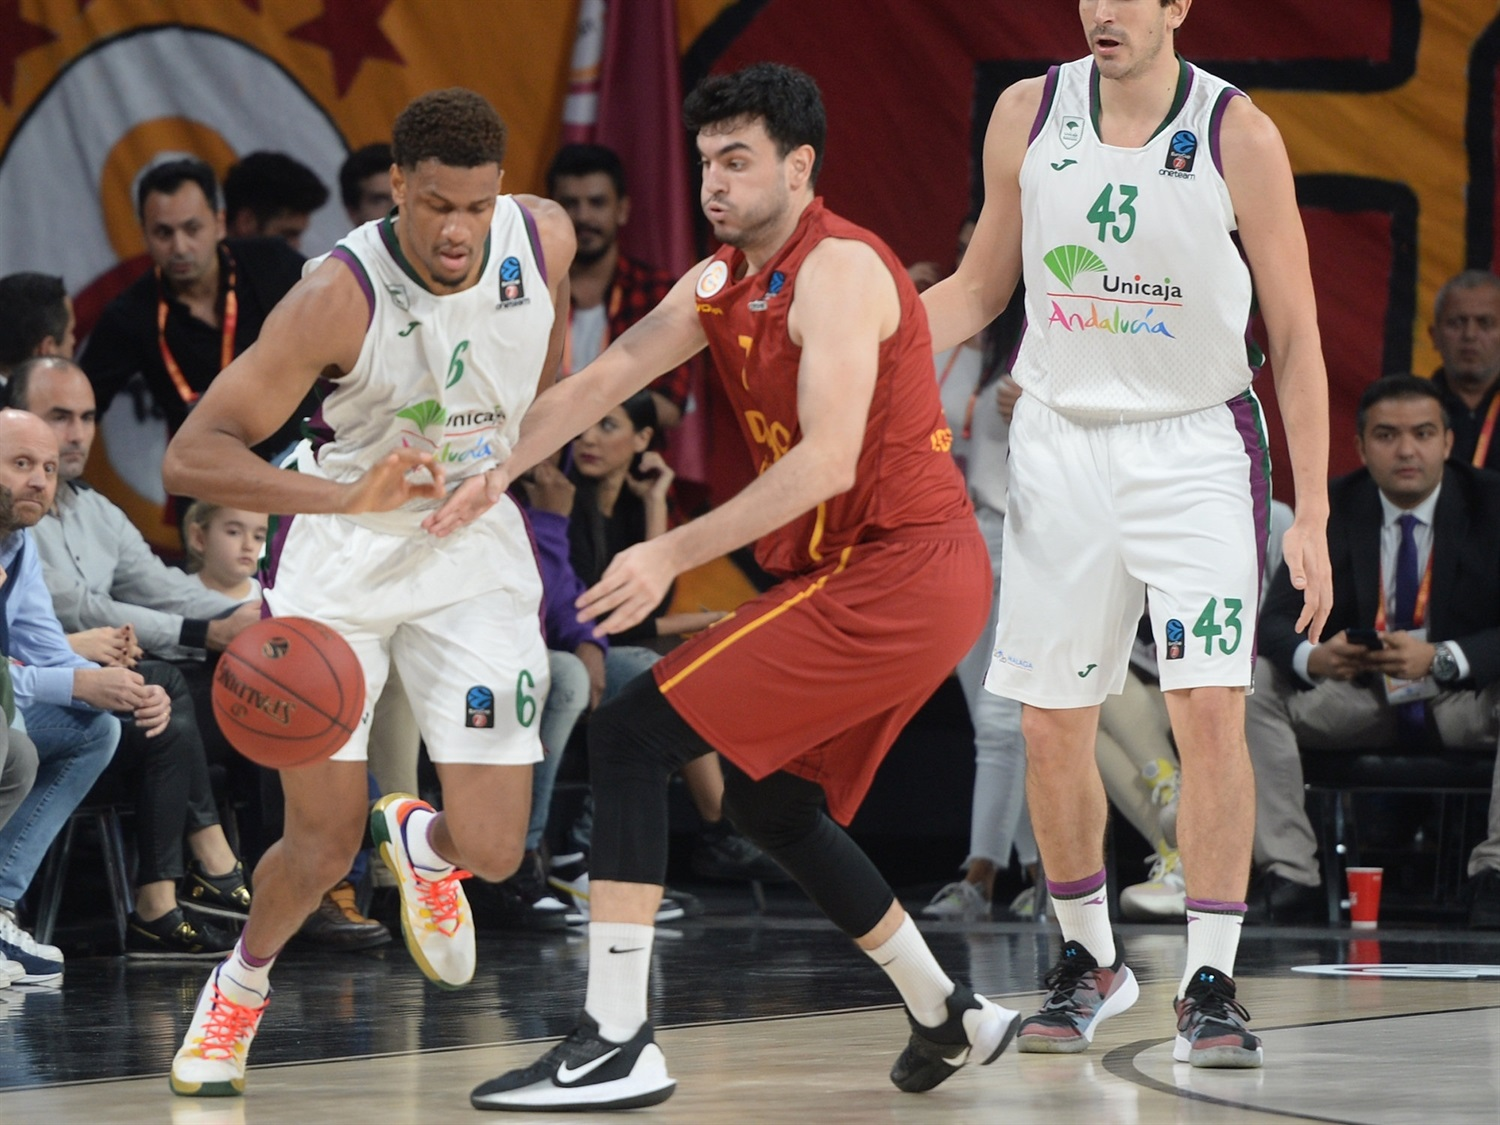 Axel Toupane - Unicaja Malaga (photo Galatasaray - Ali Kemertas) - EC19